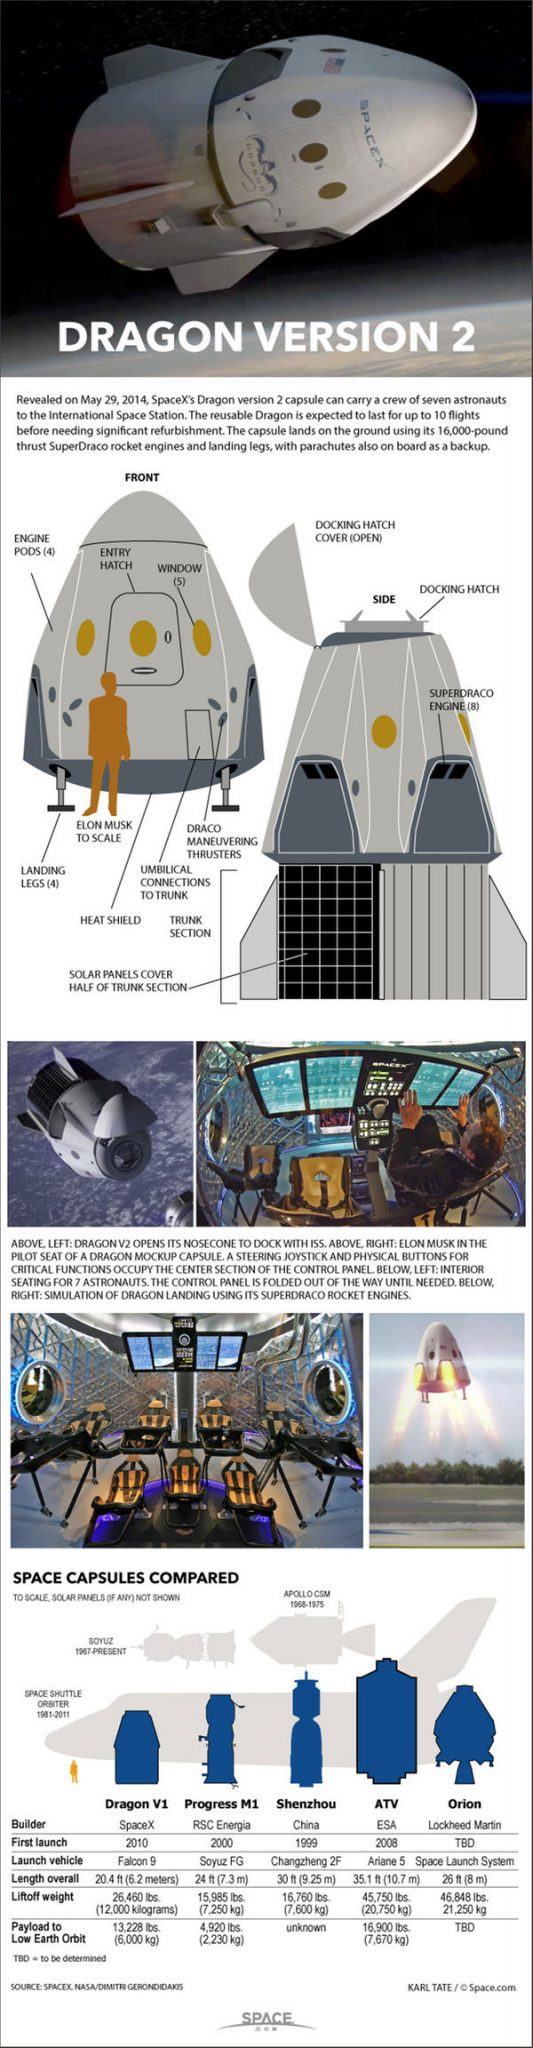 SpaceX Dragon Version 2 Capsule - How it Works - Infographic